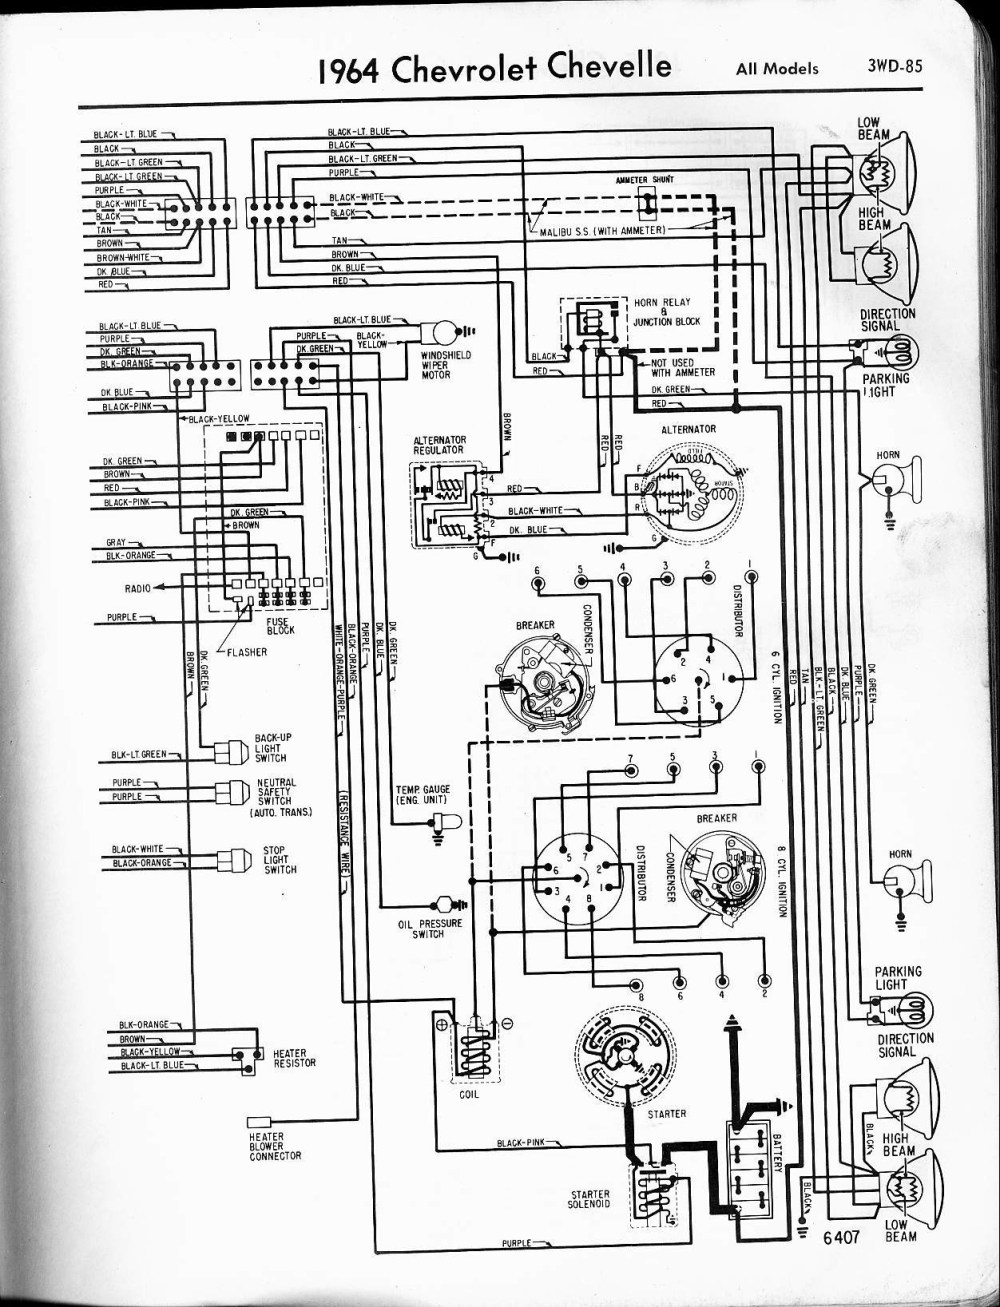 medium resolution of 1969 chevelle wiring diagram 57 65 chevy wiring diagrams u2013 my wiring1969 chevelle wiring diagram